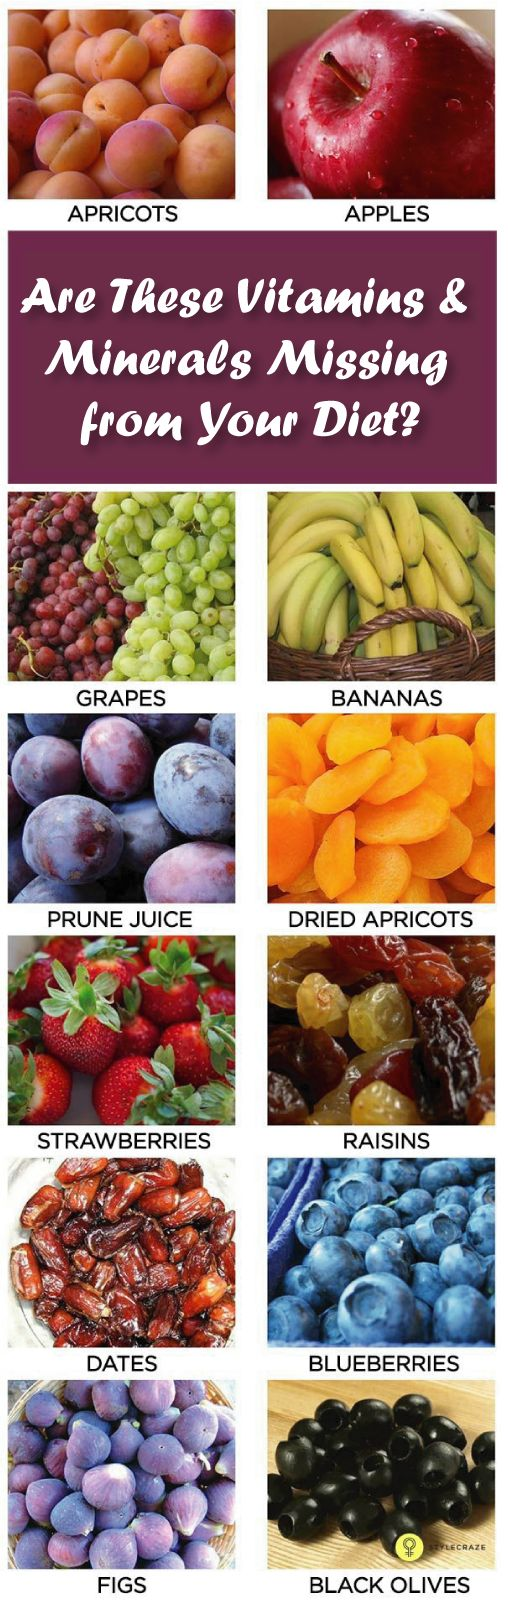 if you have Vitamins and minerals missing from your food, do not try to  fill that up with nutrition supplements instead of proper diet, today we have  talked all about; Vitamins and Minerals chart, Vitamins and Minerals nutrition,  Vitamins and Minerals